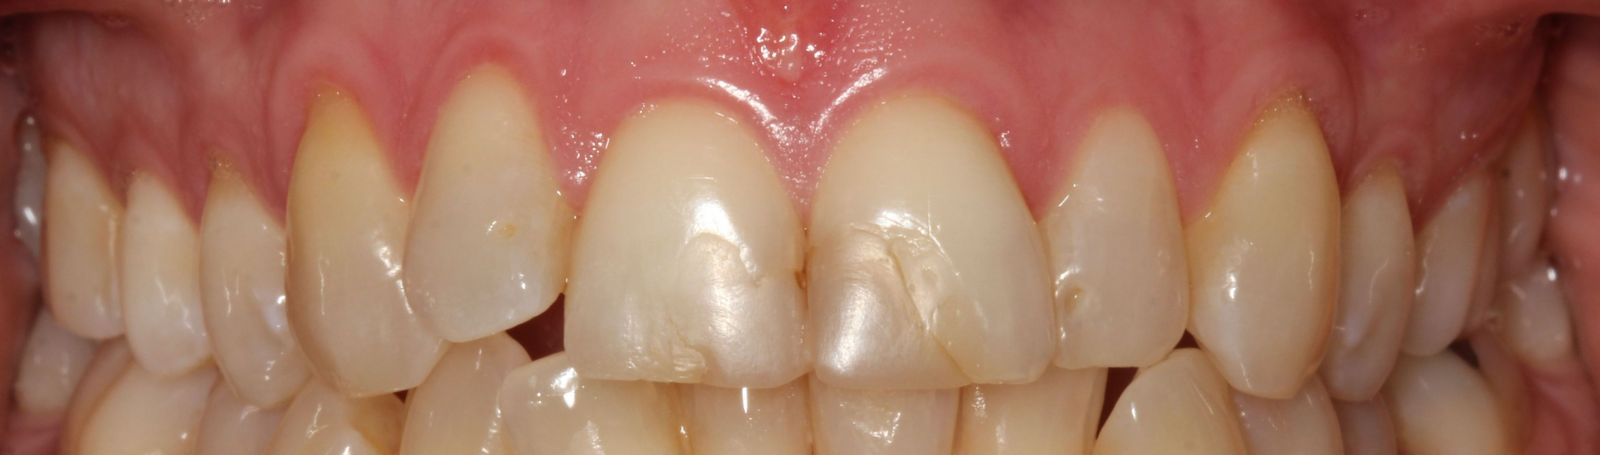 Close gaps with Invisalign